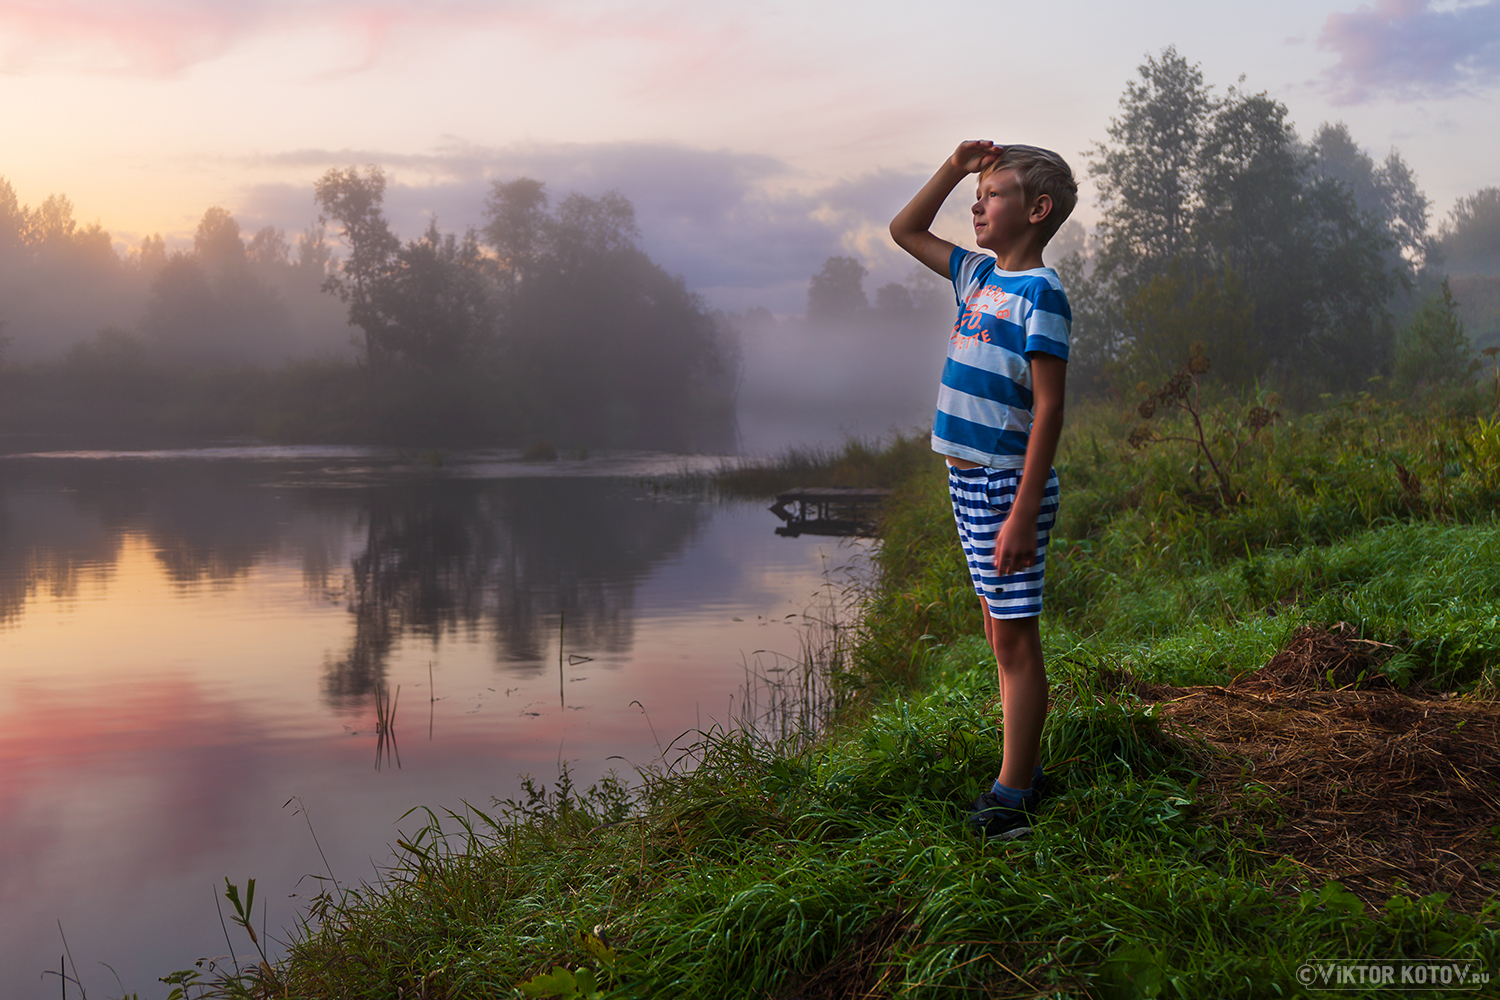 river-sunset-mist-vahonkino-boy